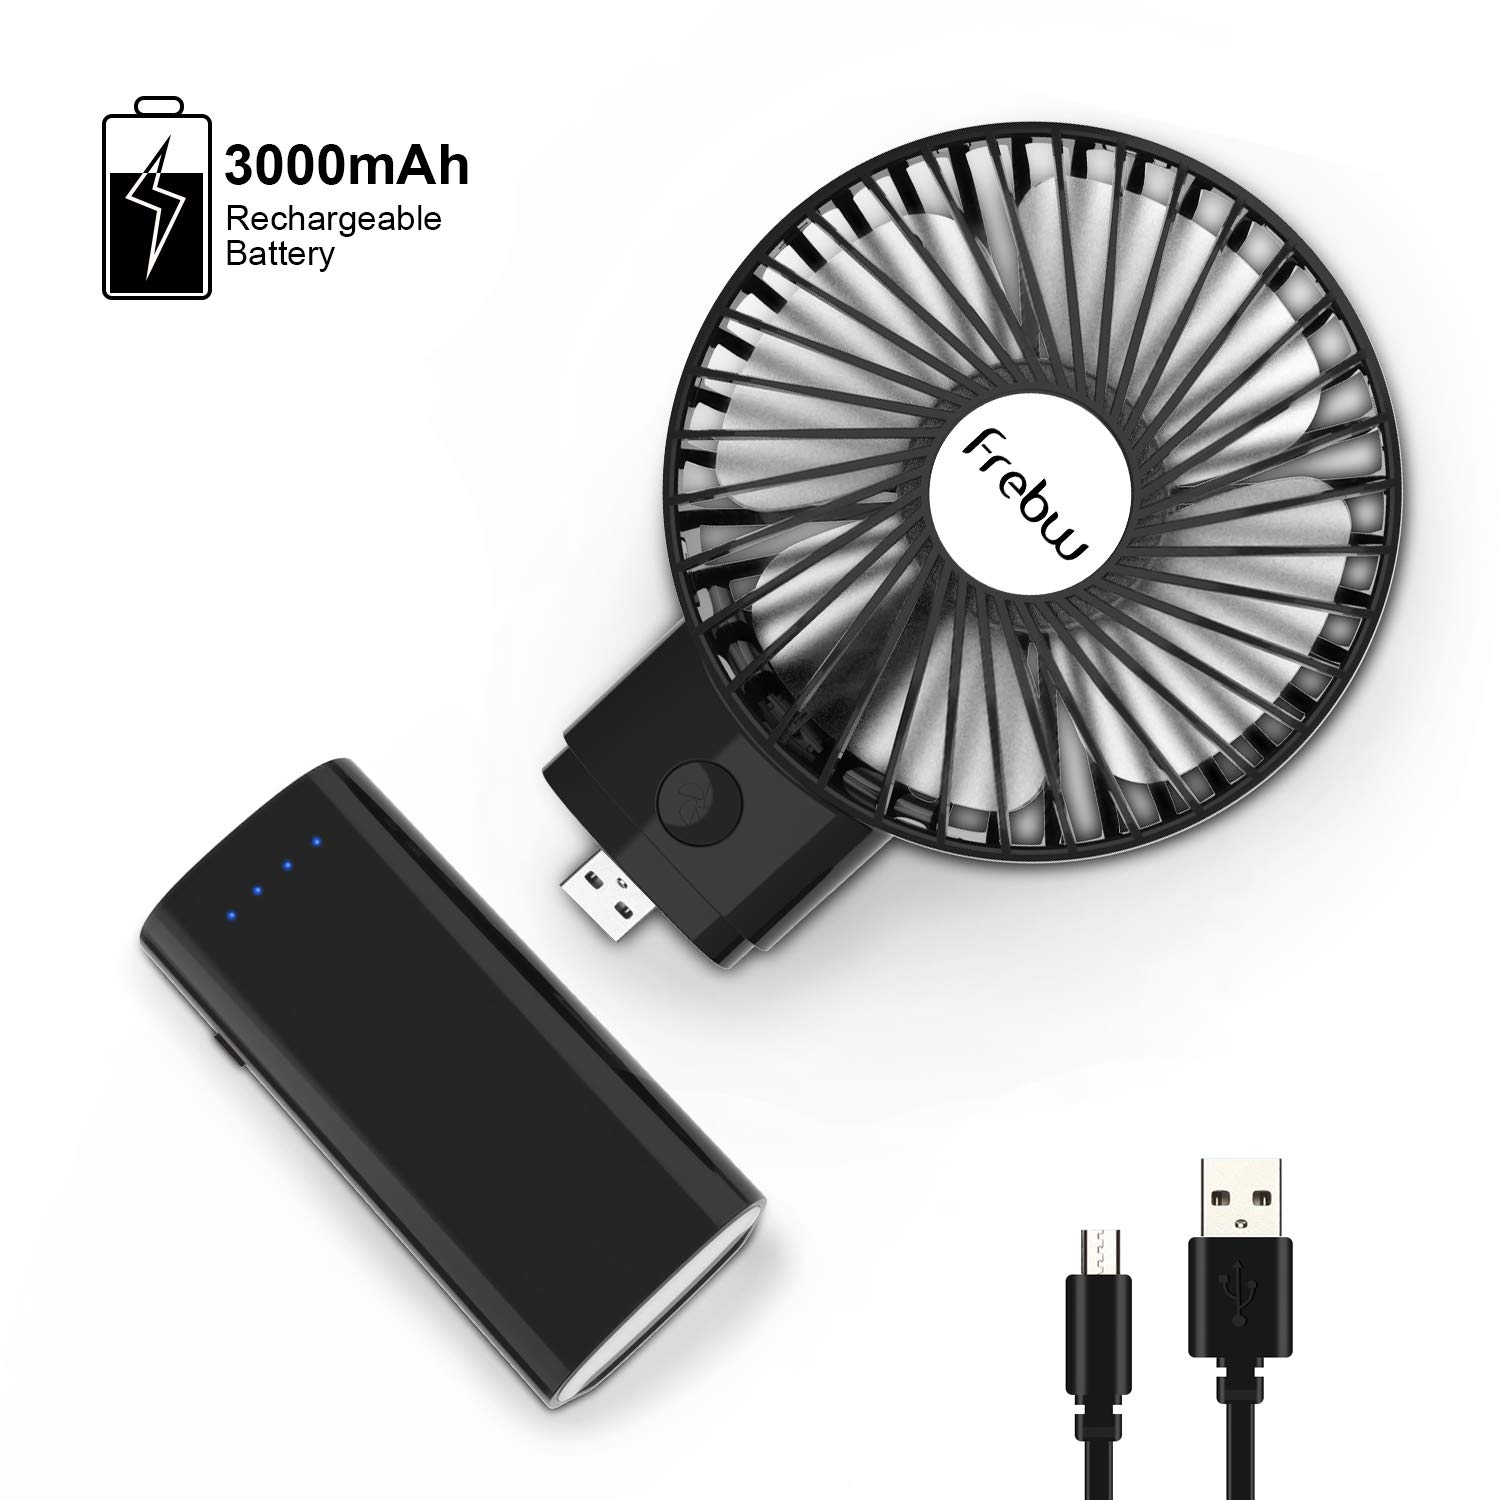 Frebw 3000mAh USB Mini Handheld Sized Fan, Portable Handheld Fan with 8 Hours Working Time, 3 Setting, Strong Wind, Foldable Design, for Kids Travel Camping and Indoor Outdoor Activities Black